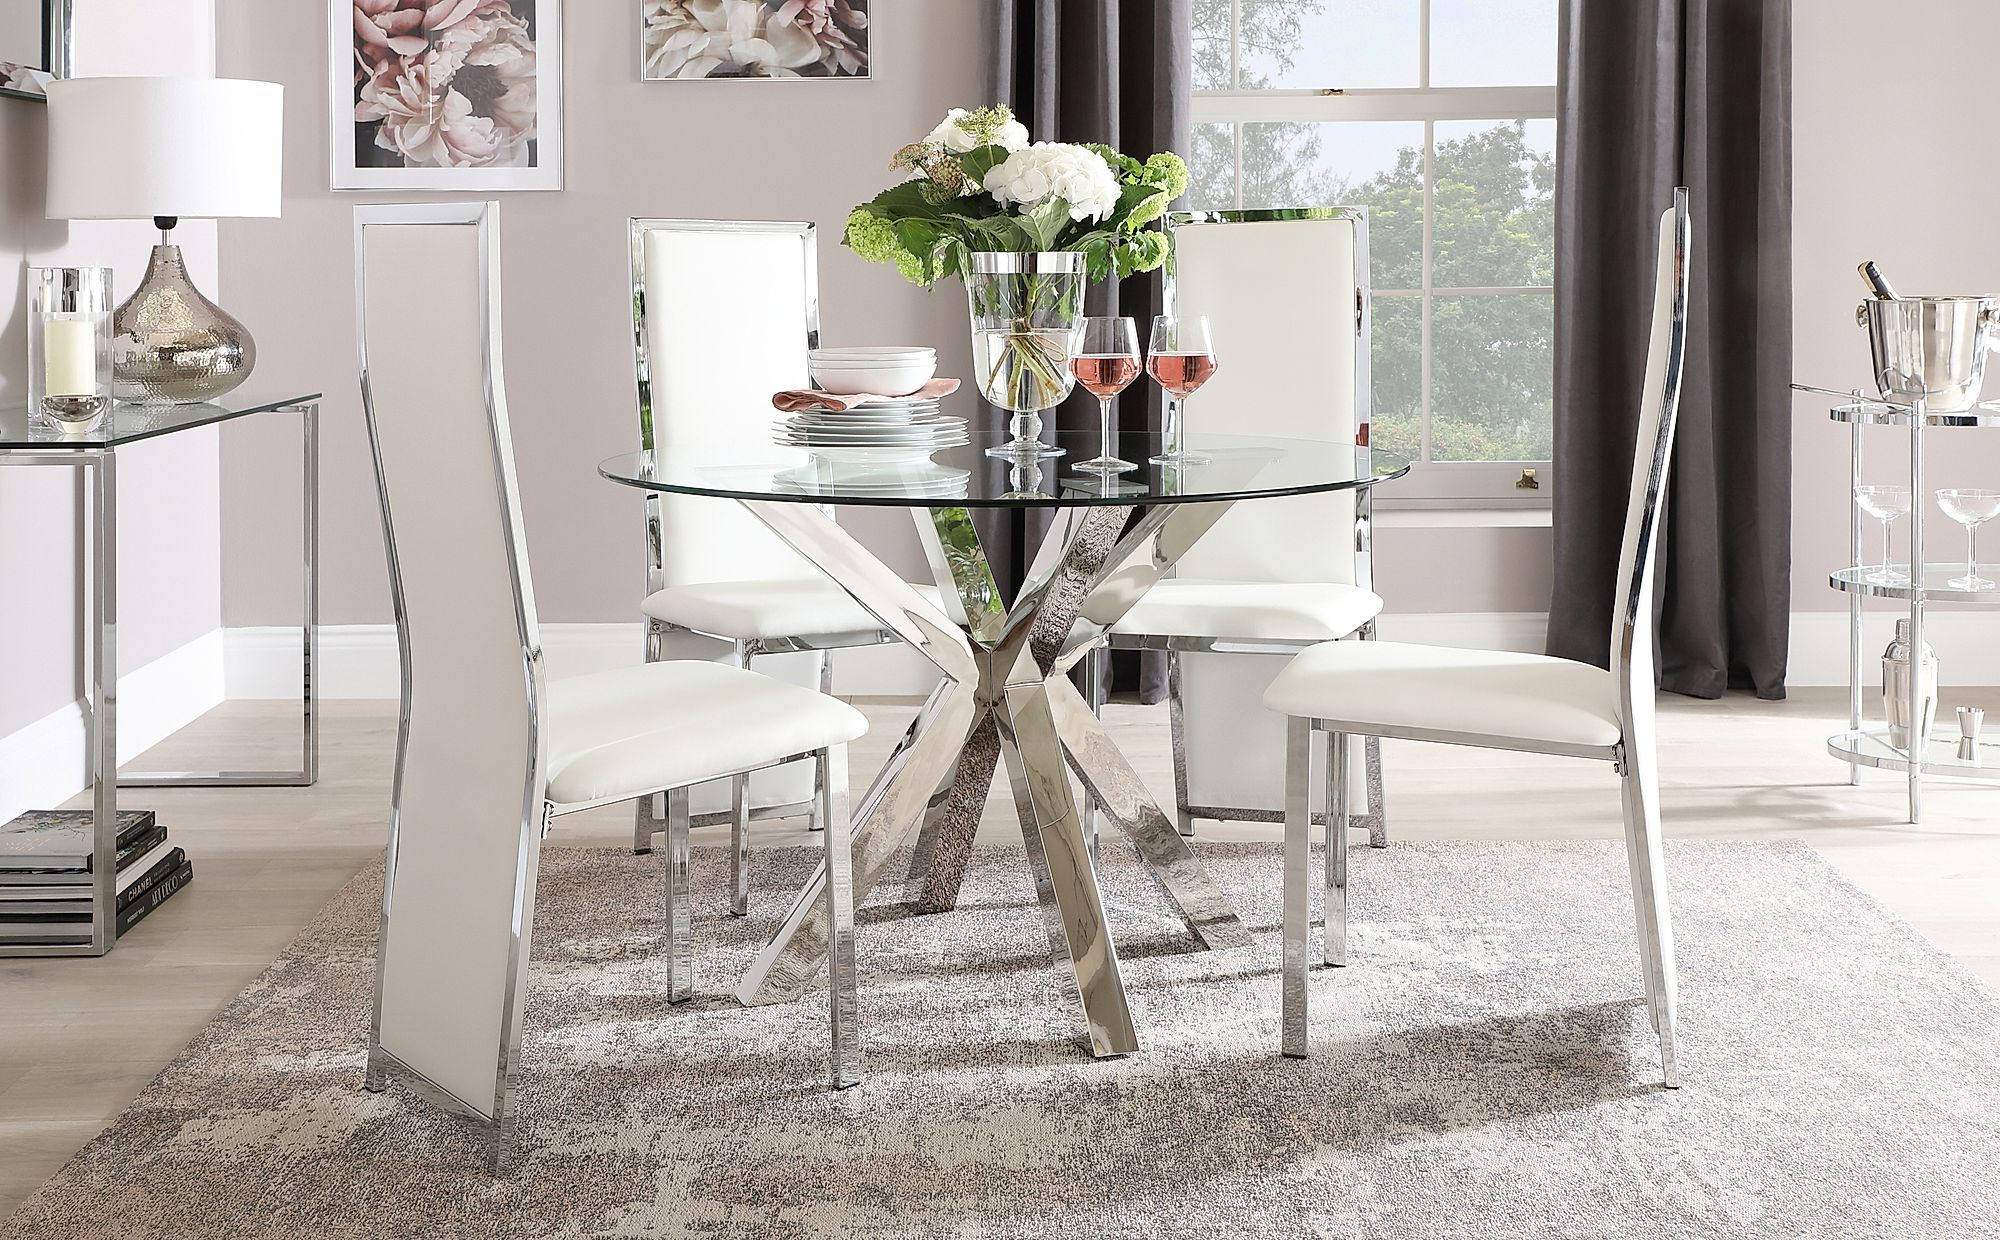 Plaza Round Chrome And Glass Dining Table With 4 Celeste White